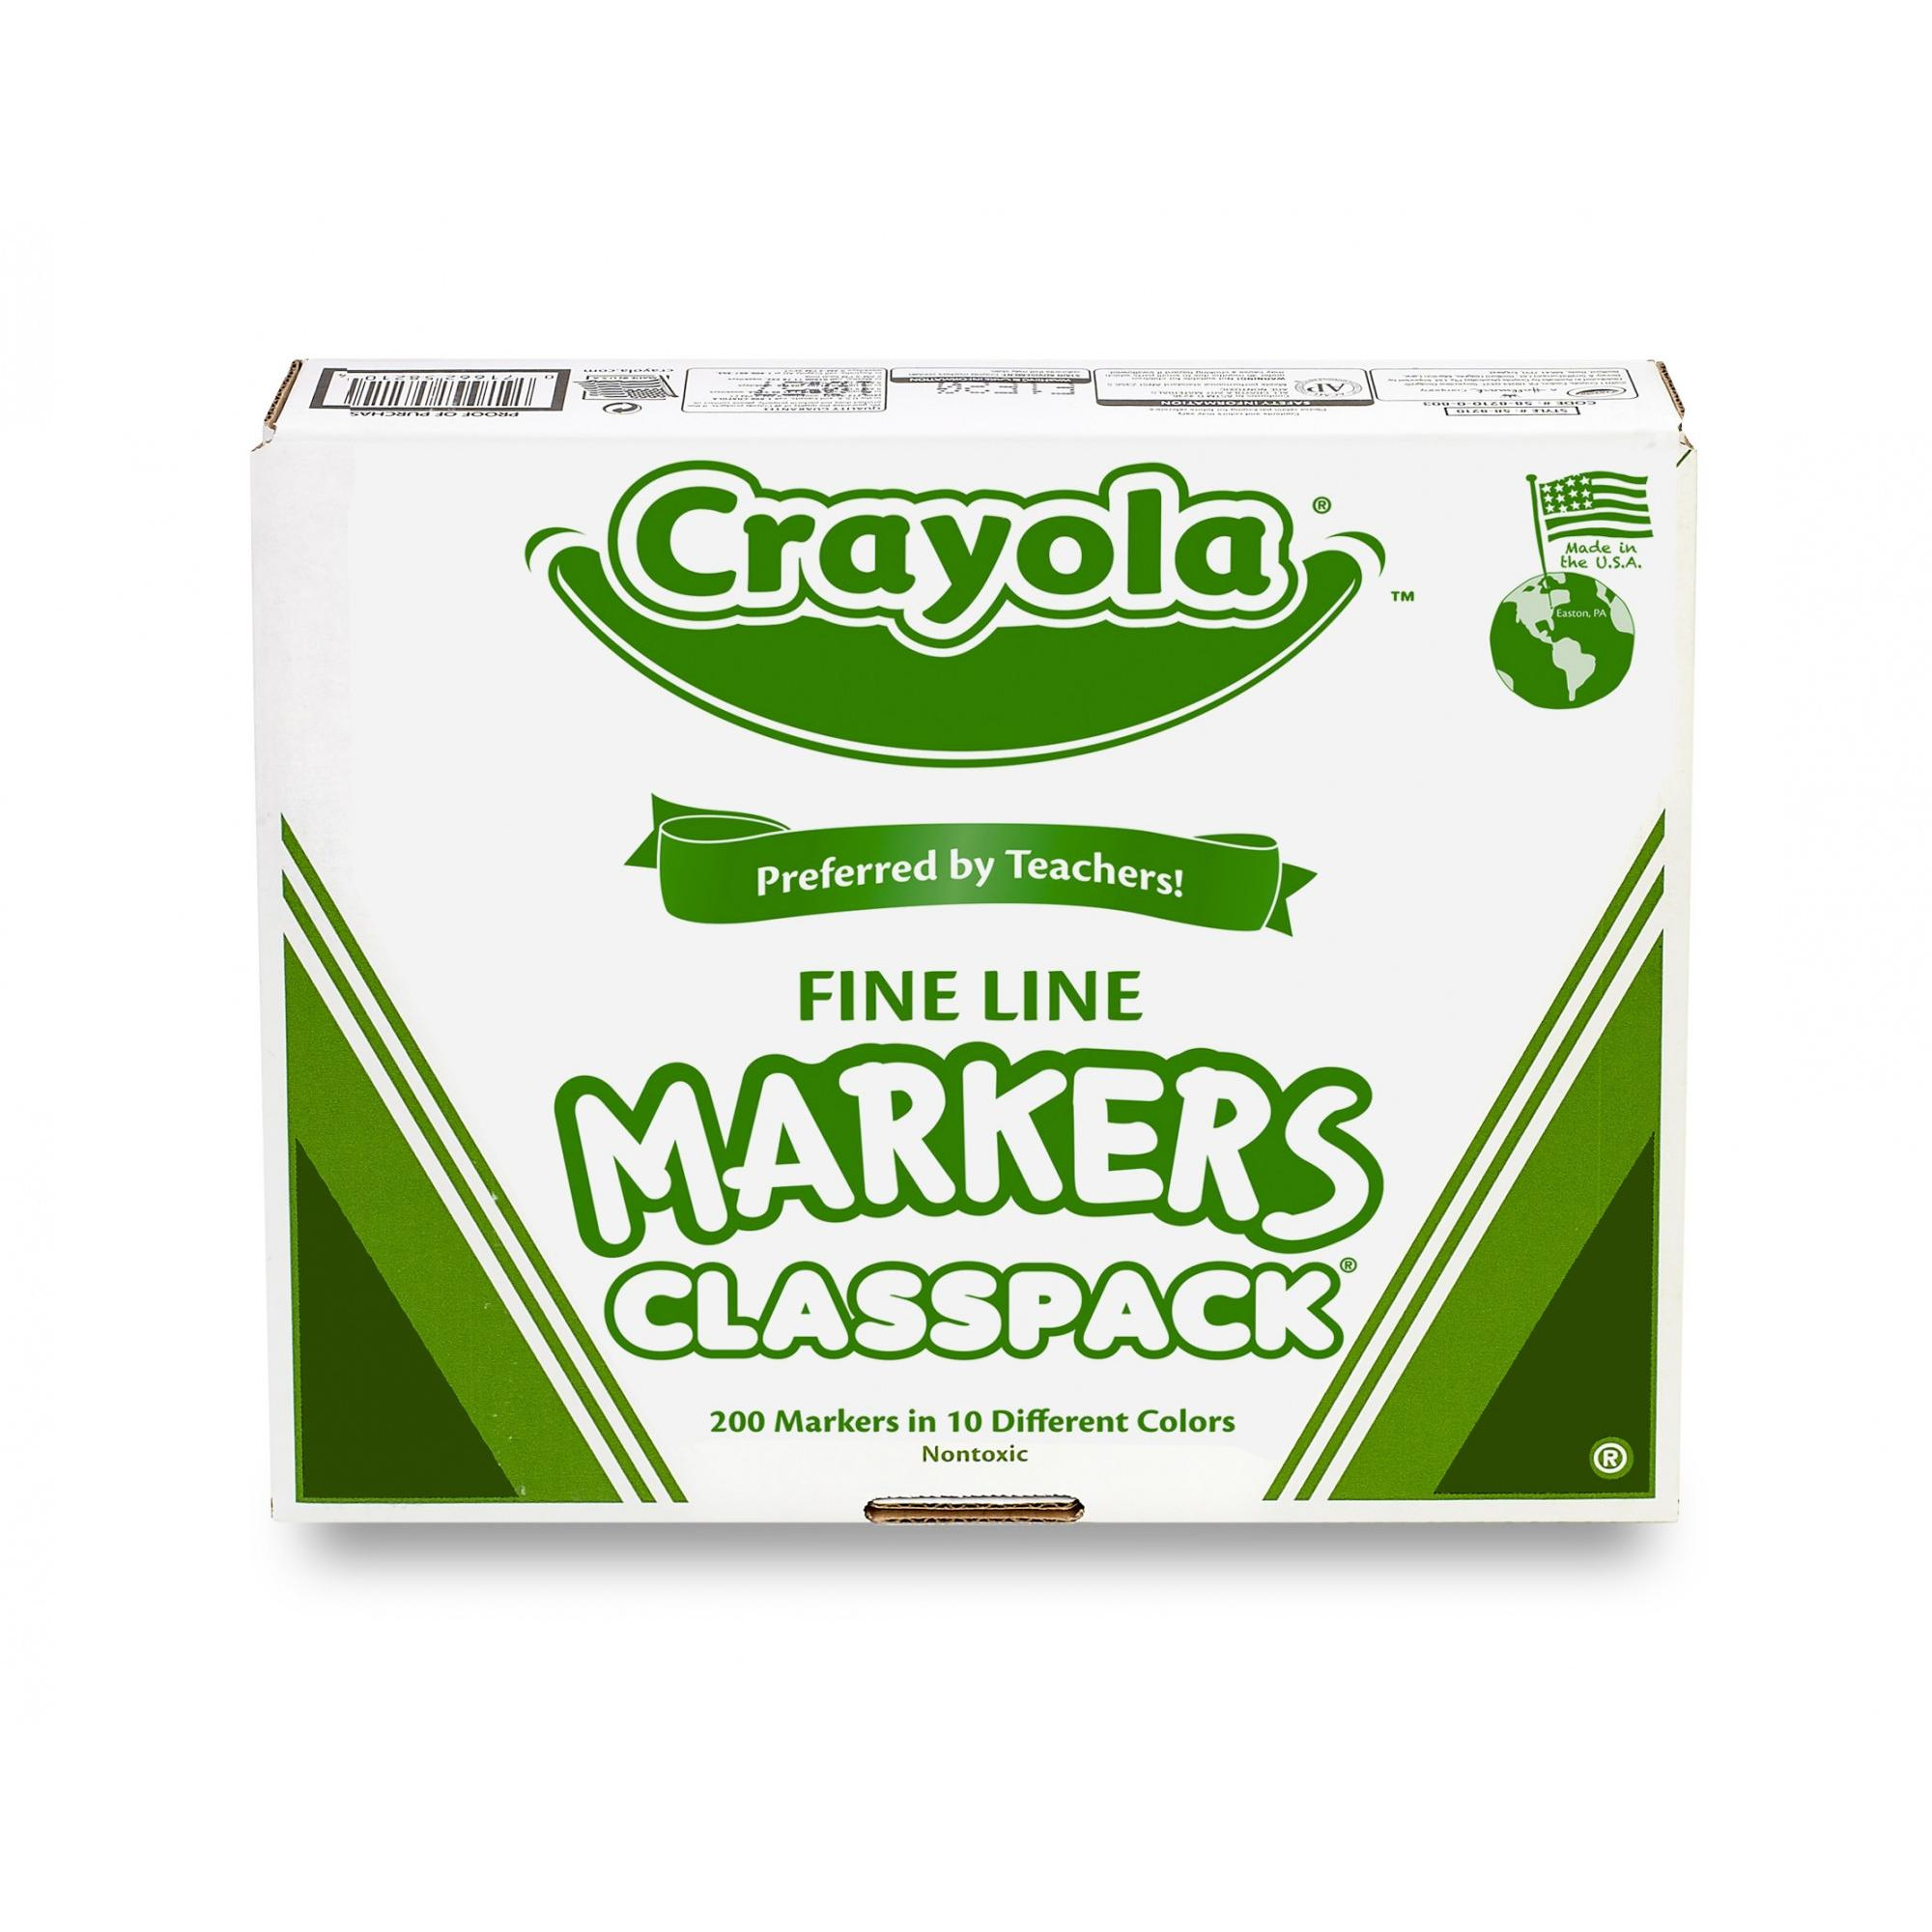 Crayola Classpack of Fine Line Markers, 200-Count, 10 Colors by Crayola, LLC